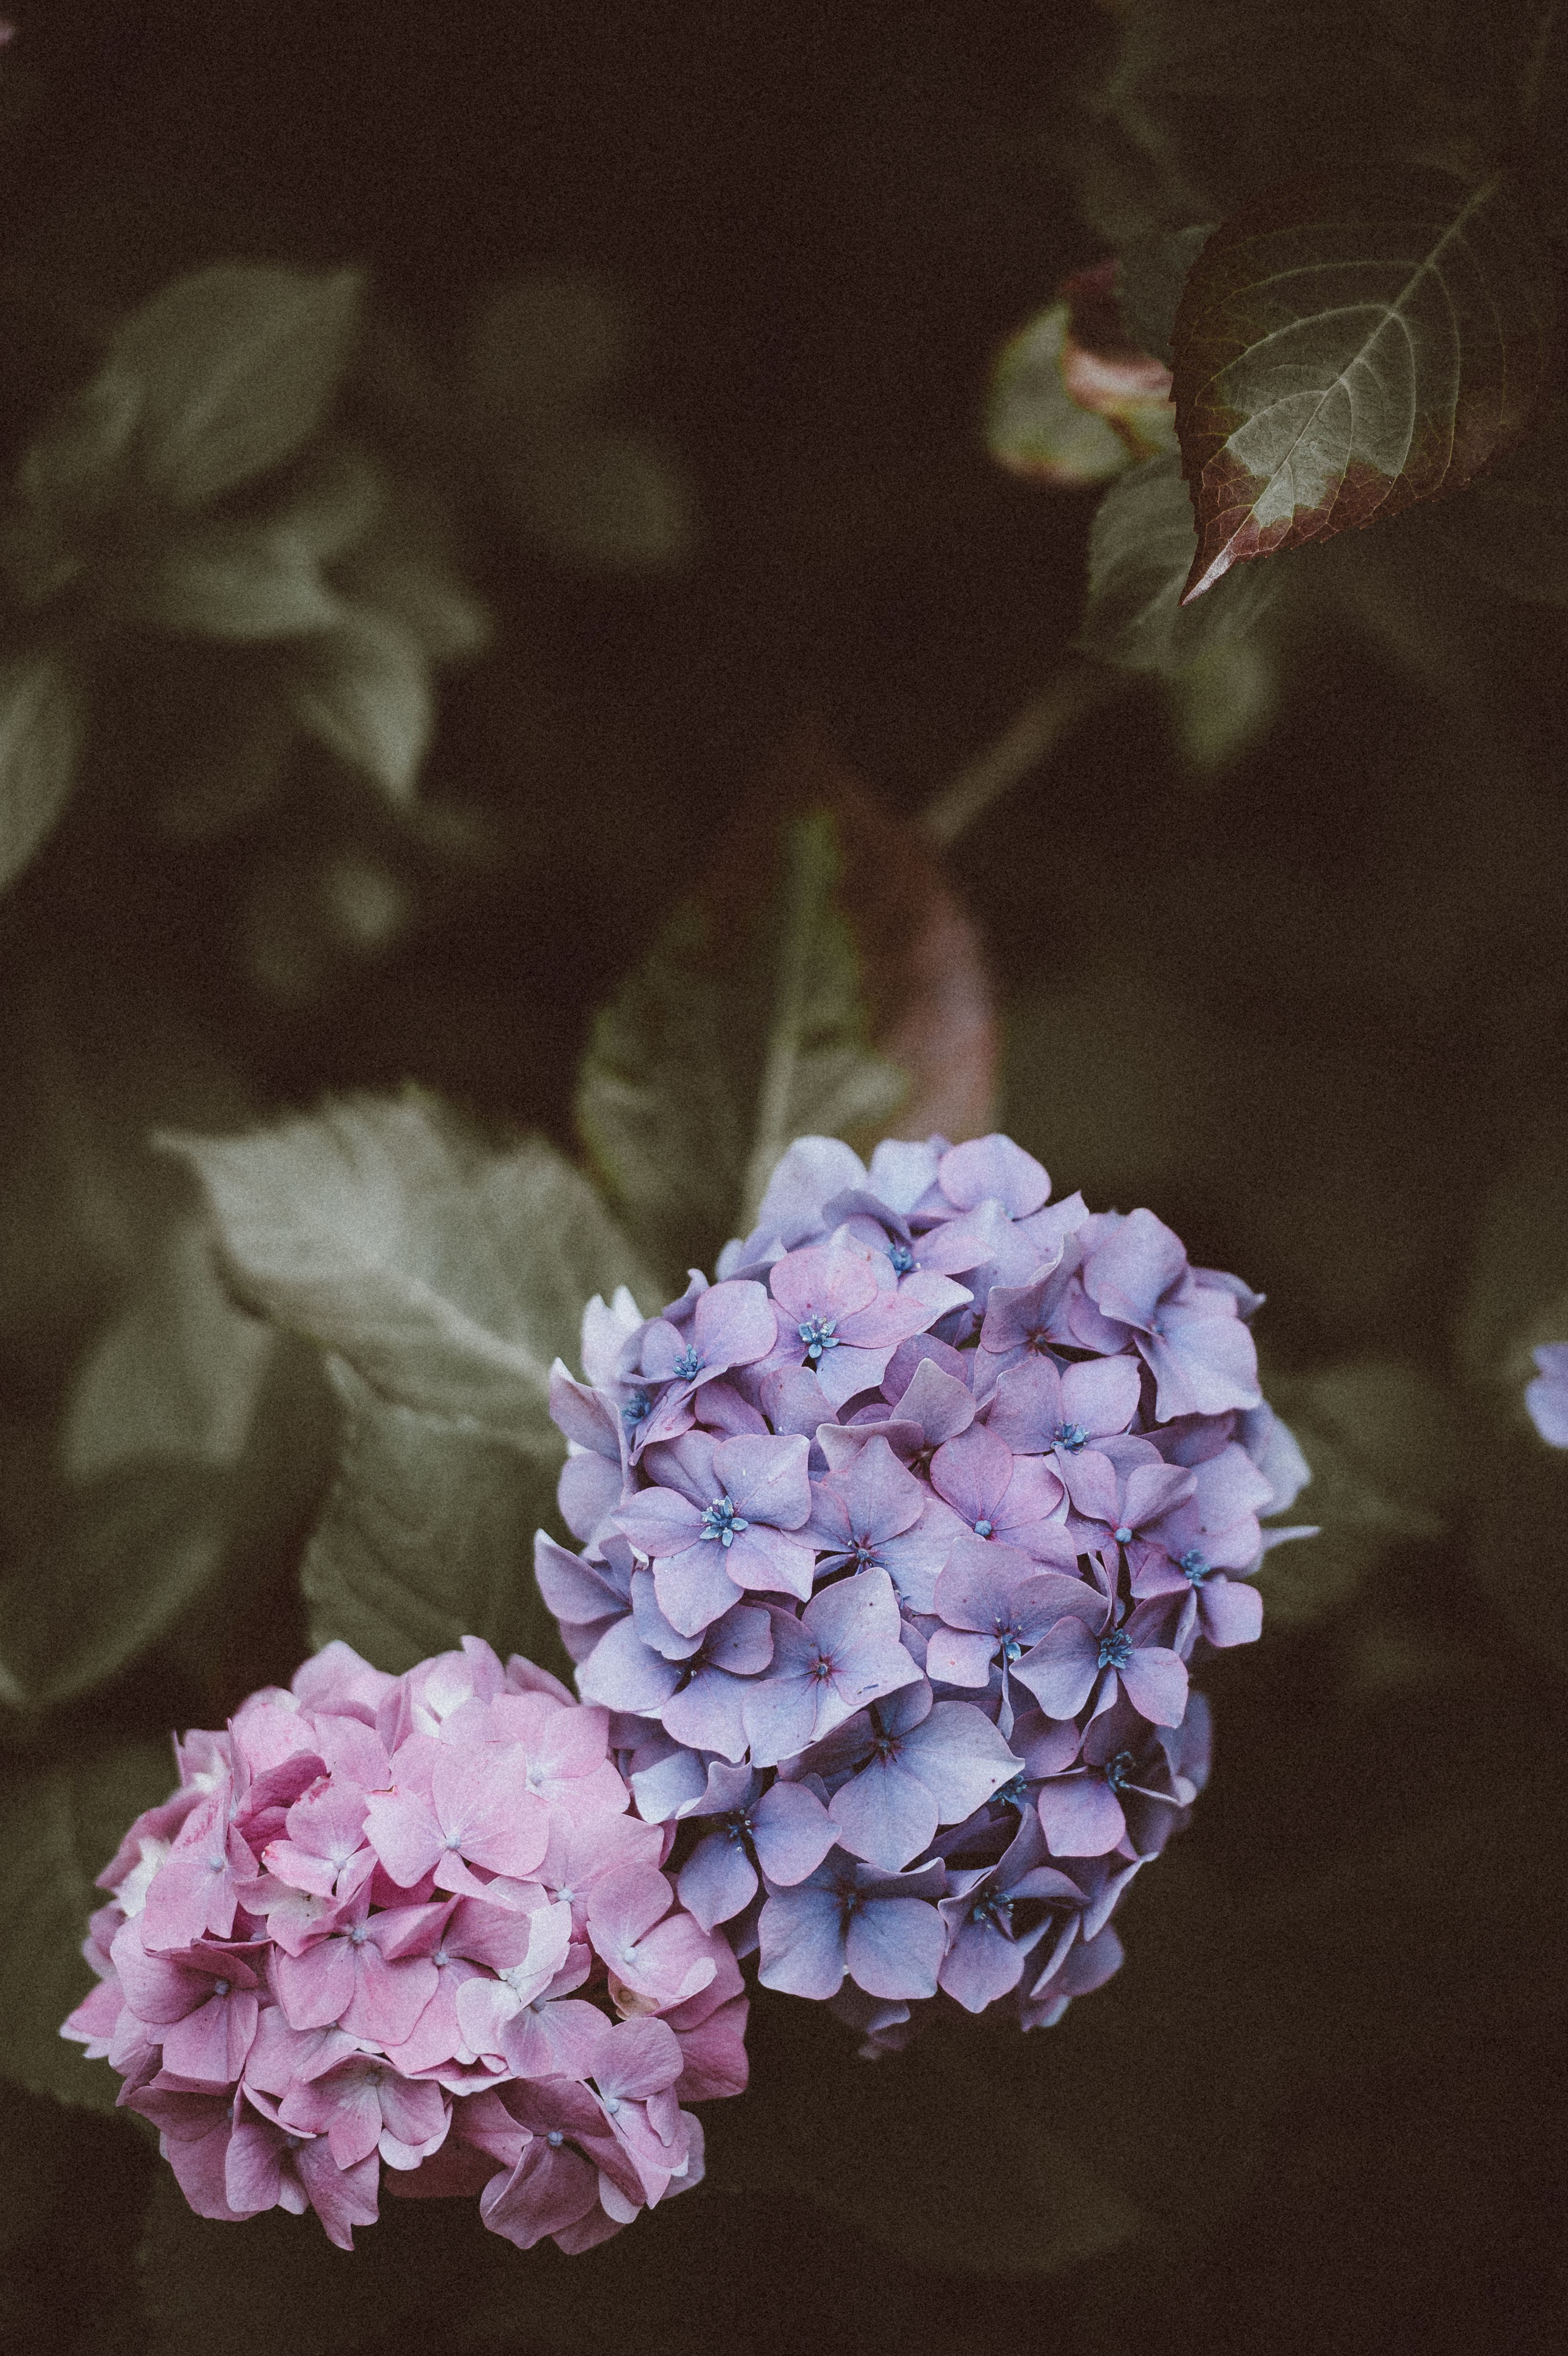 closeup photo of purple and pink petaled flowers